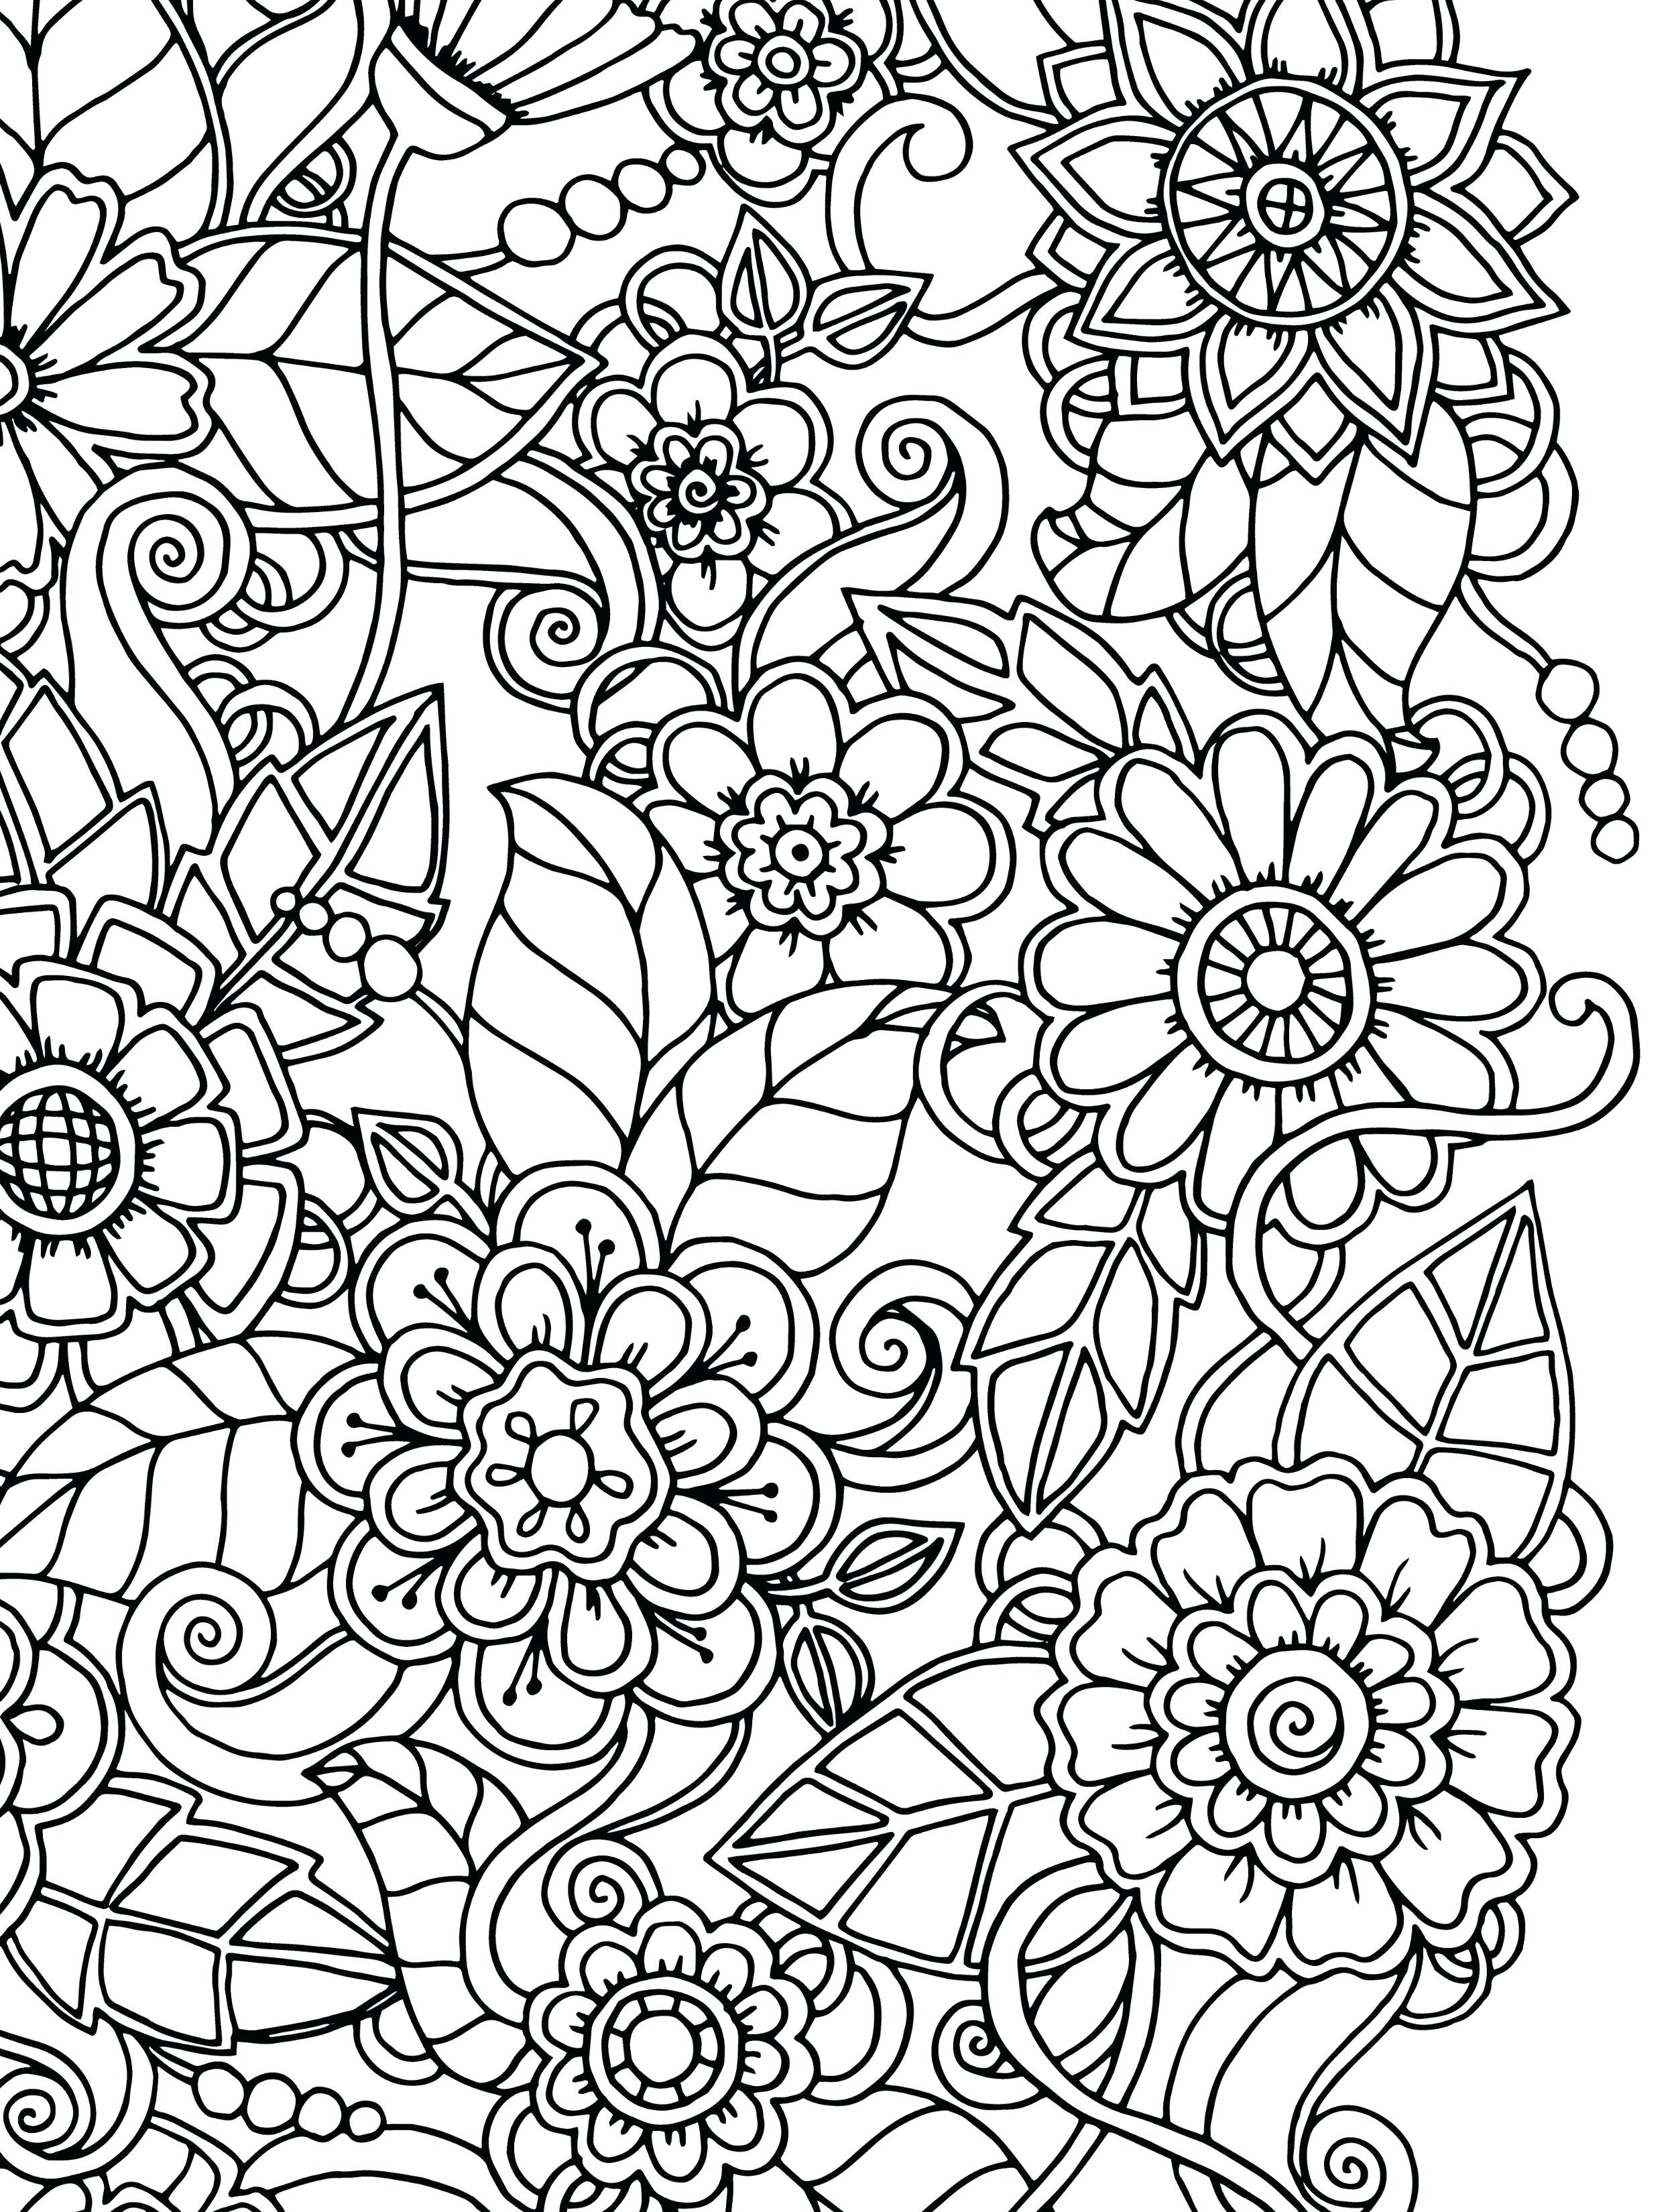 2500x3300 Crazy Hair Adult Coloring Pages Crazy Coloring Pages Crazy Design